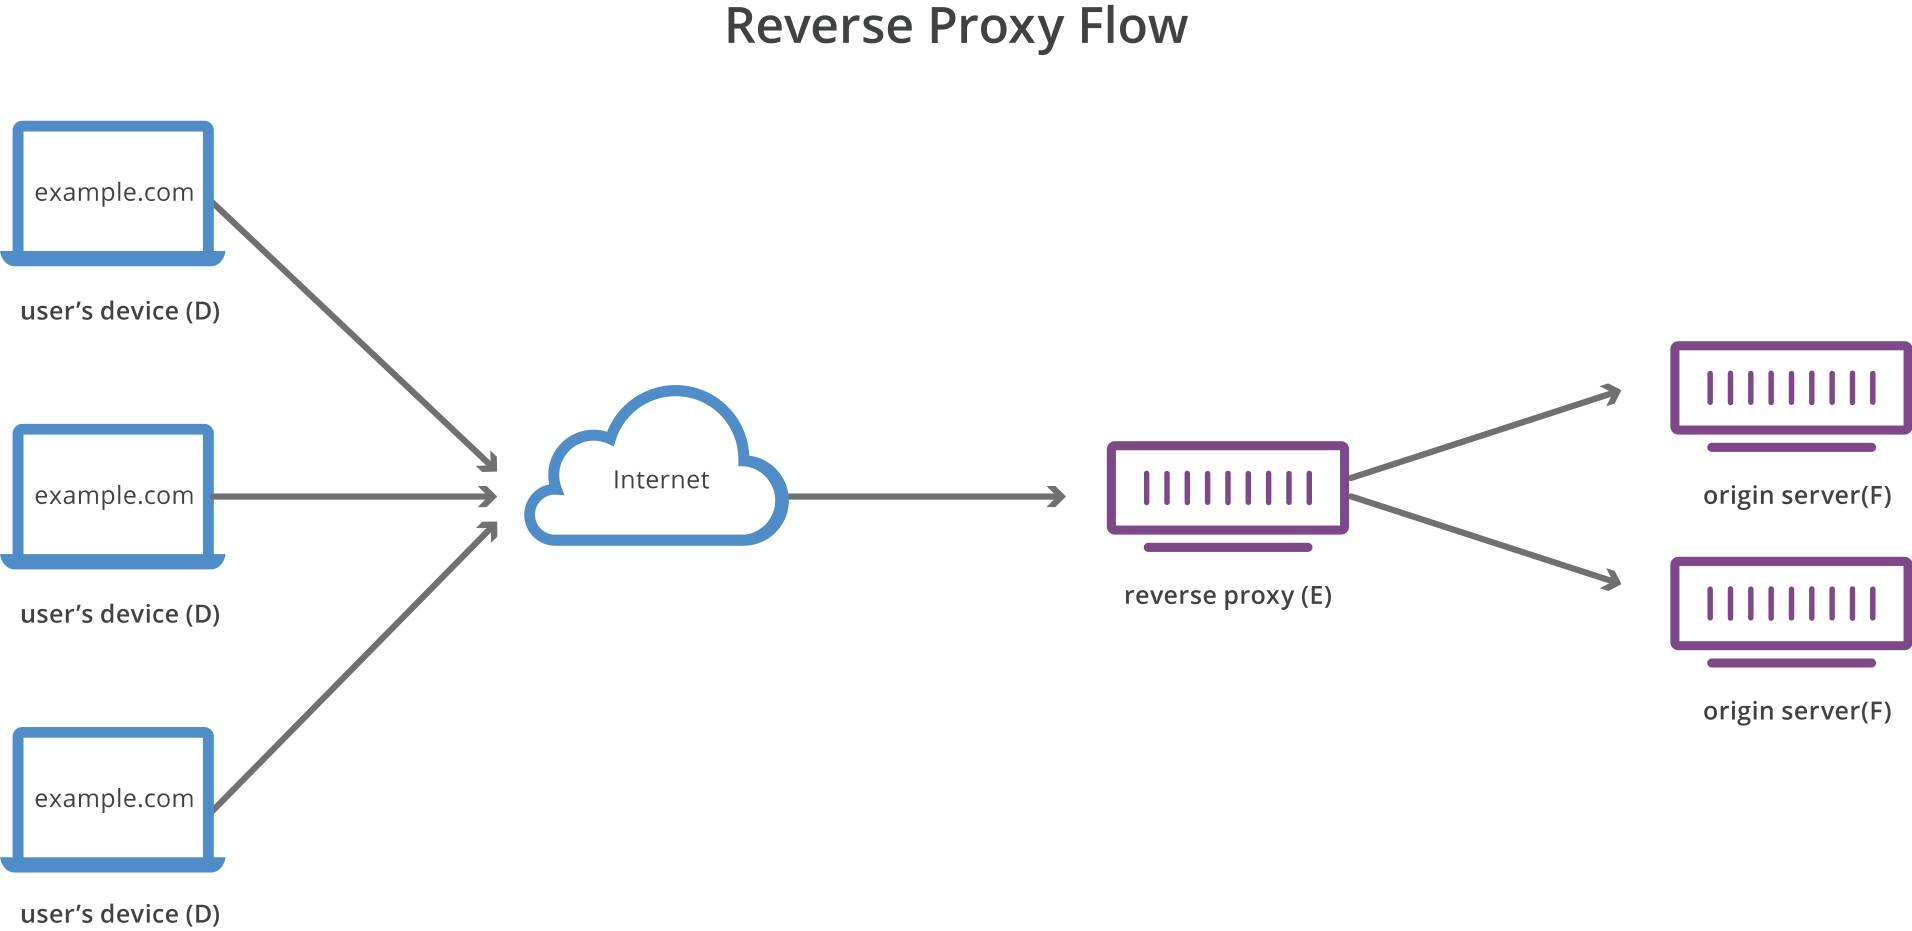 Nginx Reverse Proxy To Azure Web App (Source: https://www.cloudflare.com/learning/cdn/glossary/reverse-proxy/)